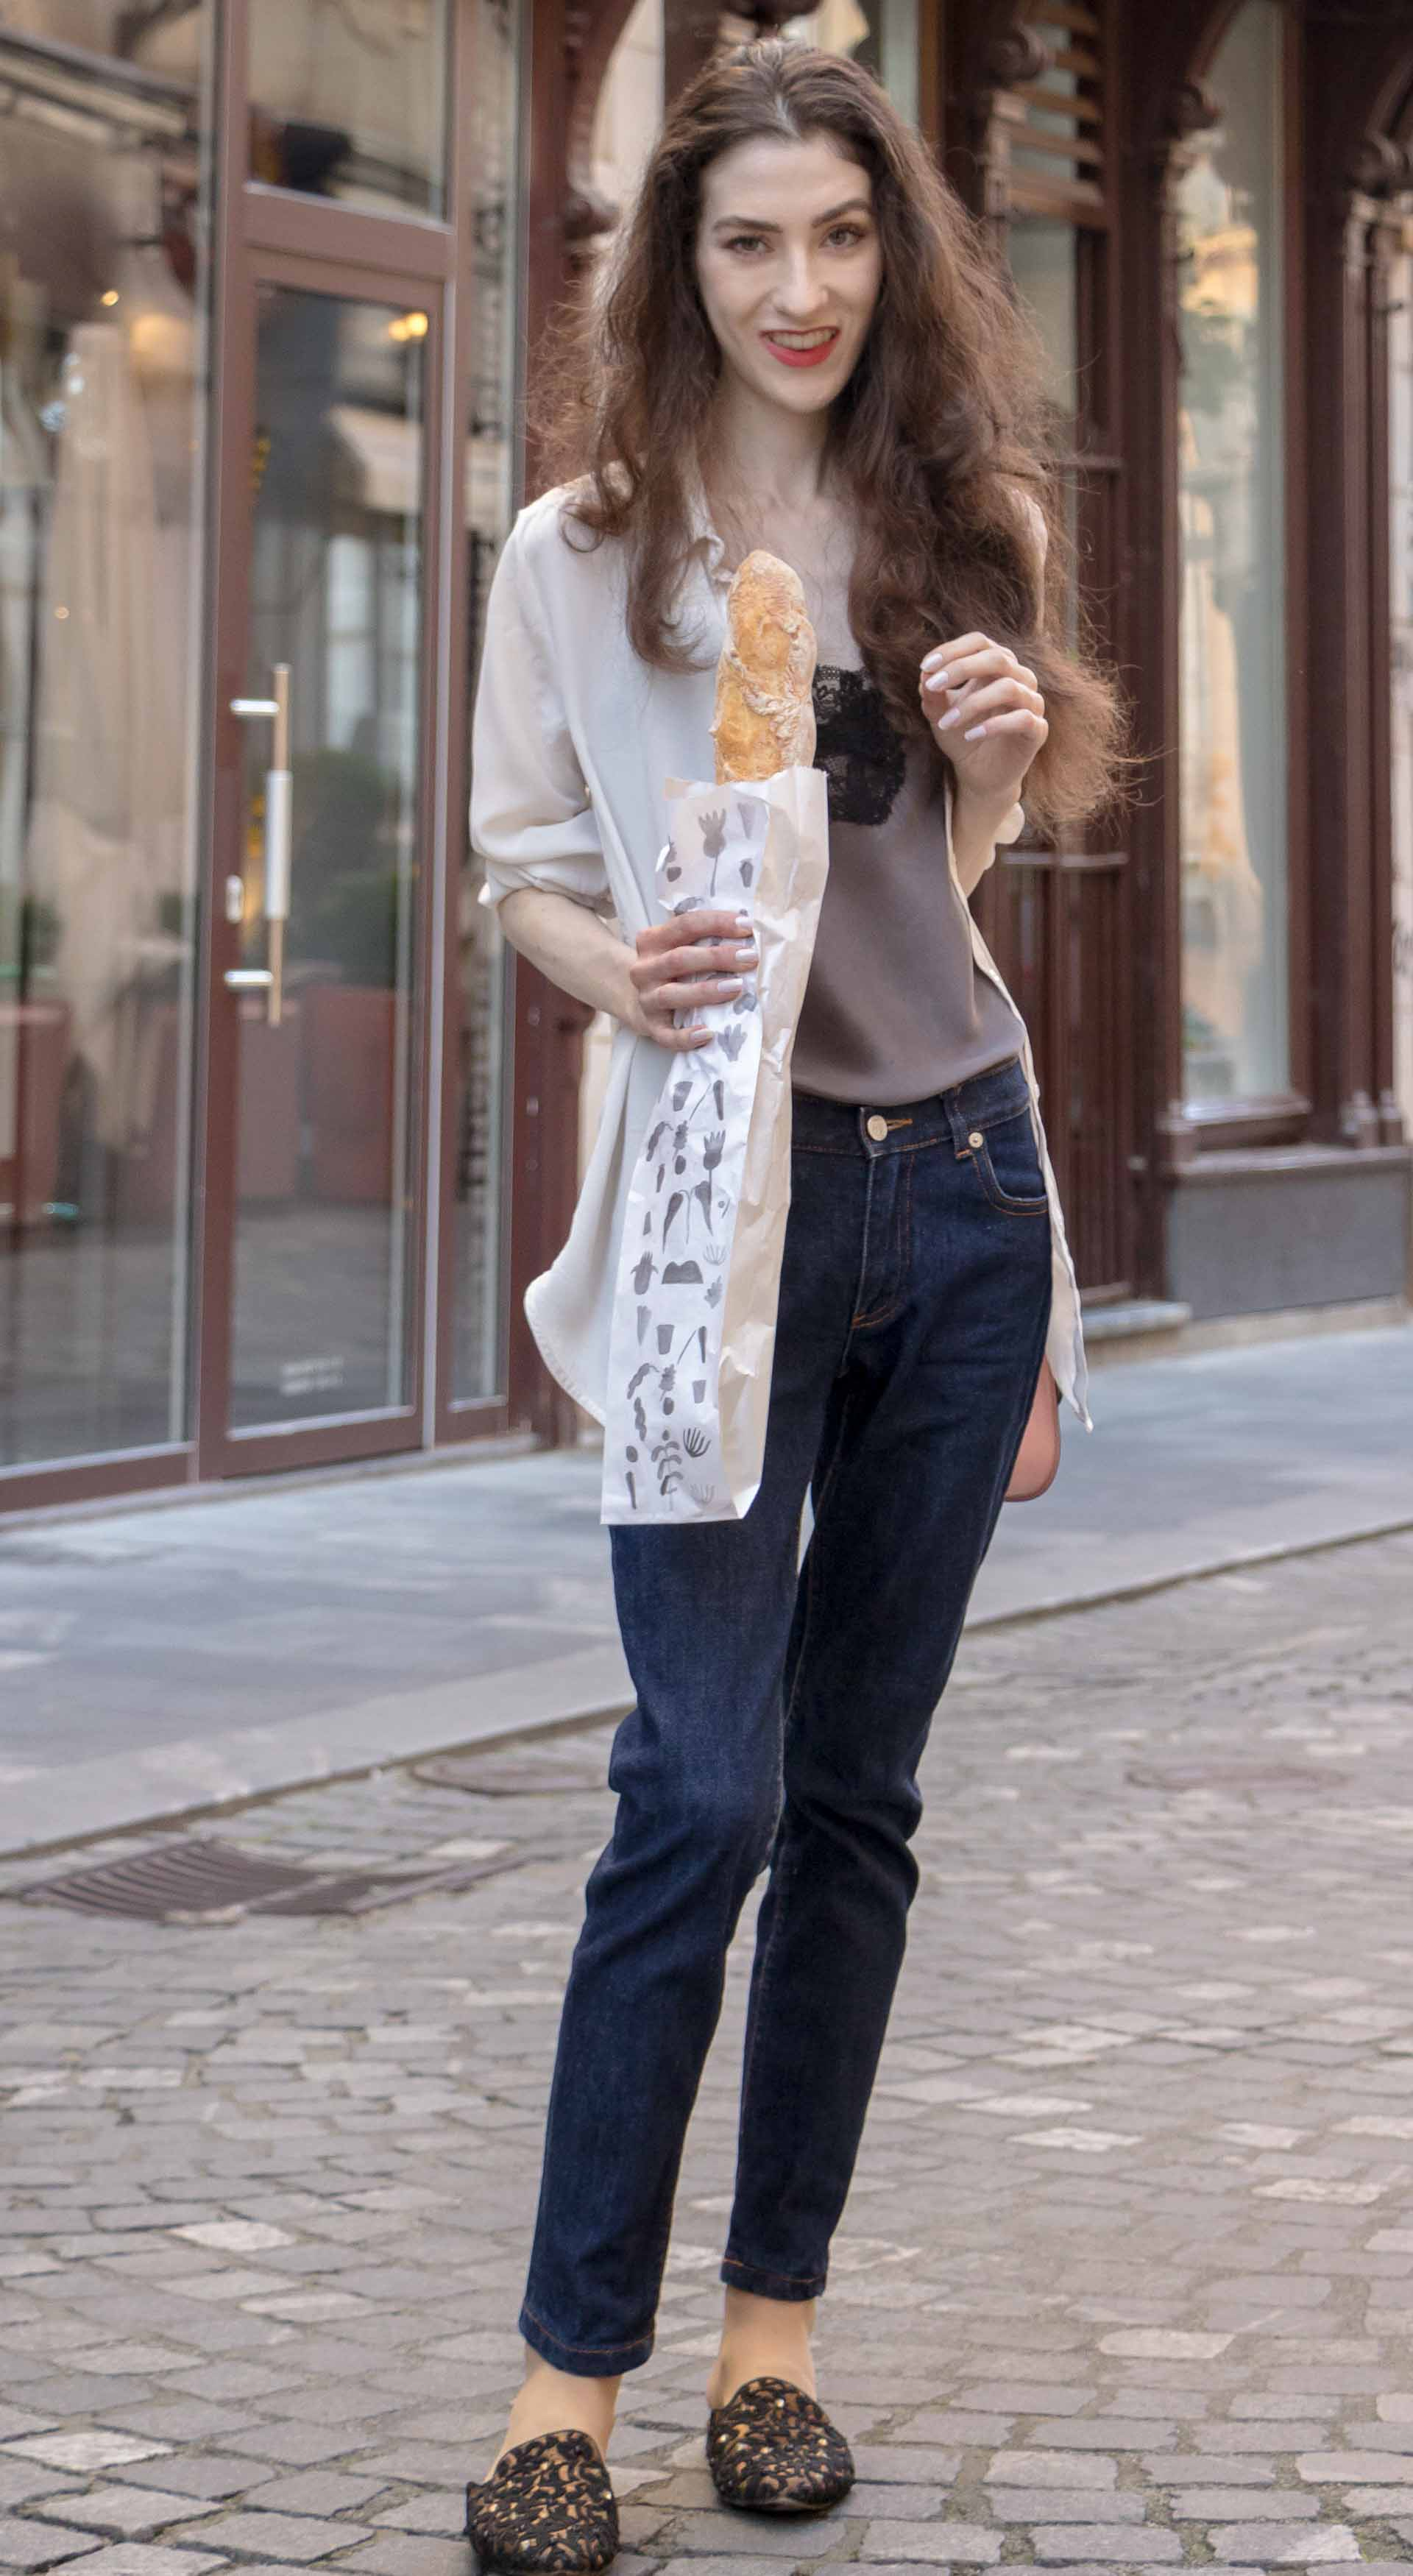 Fashion Blogger Veronika Lipar of Brunette from Wall Street wearing white organza shirt with transparent back from Sandro Paris, grey silk slip top, A.P.C. dark denim jeans, mules, pink Furla shoulder bag, while holding a baguette on the street